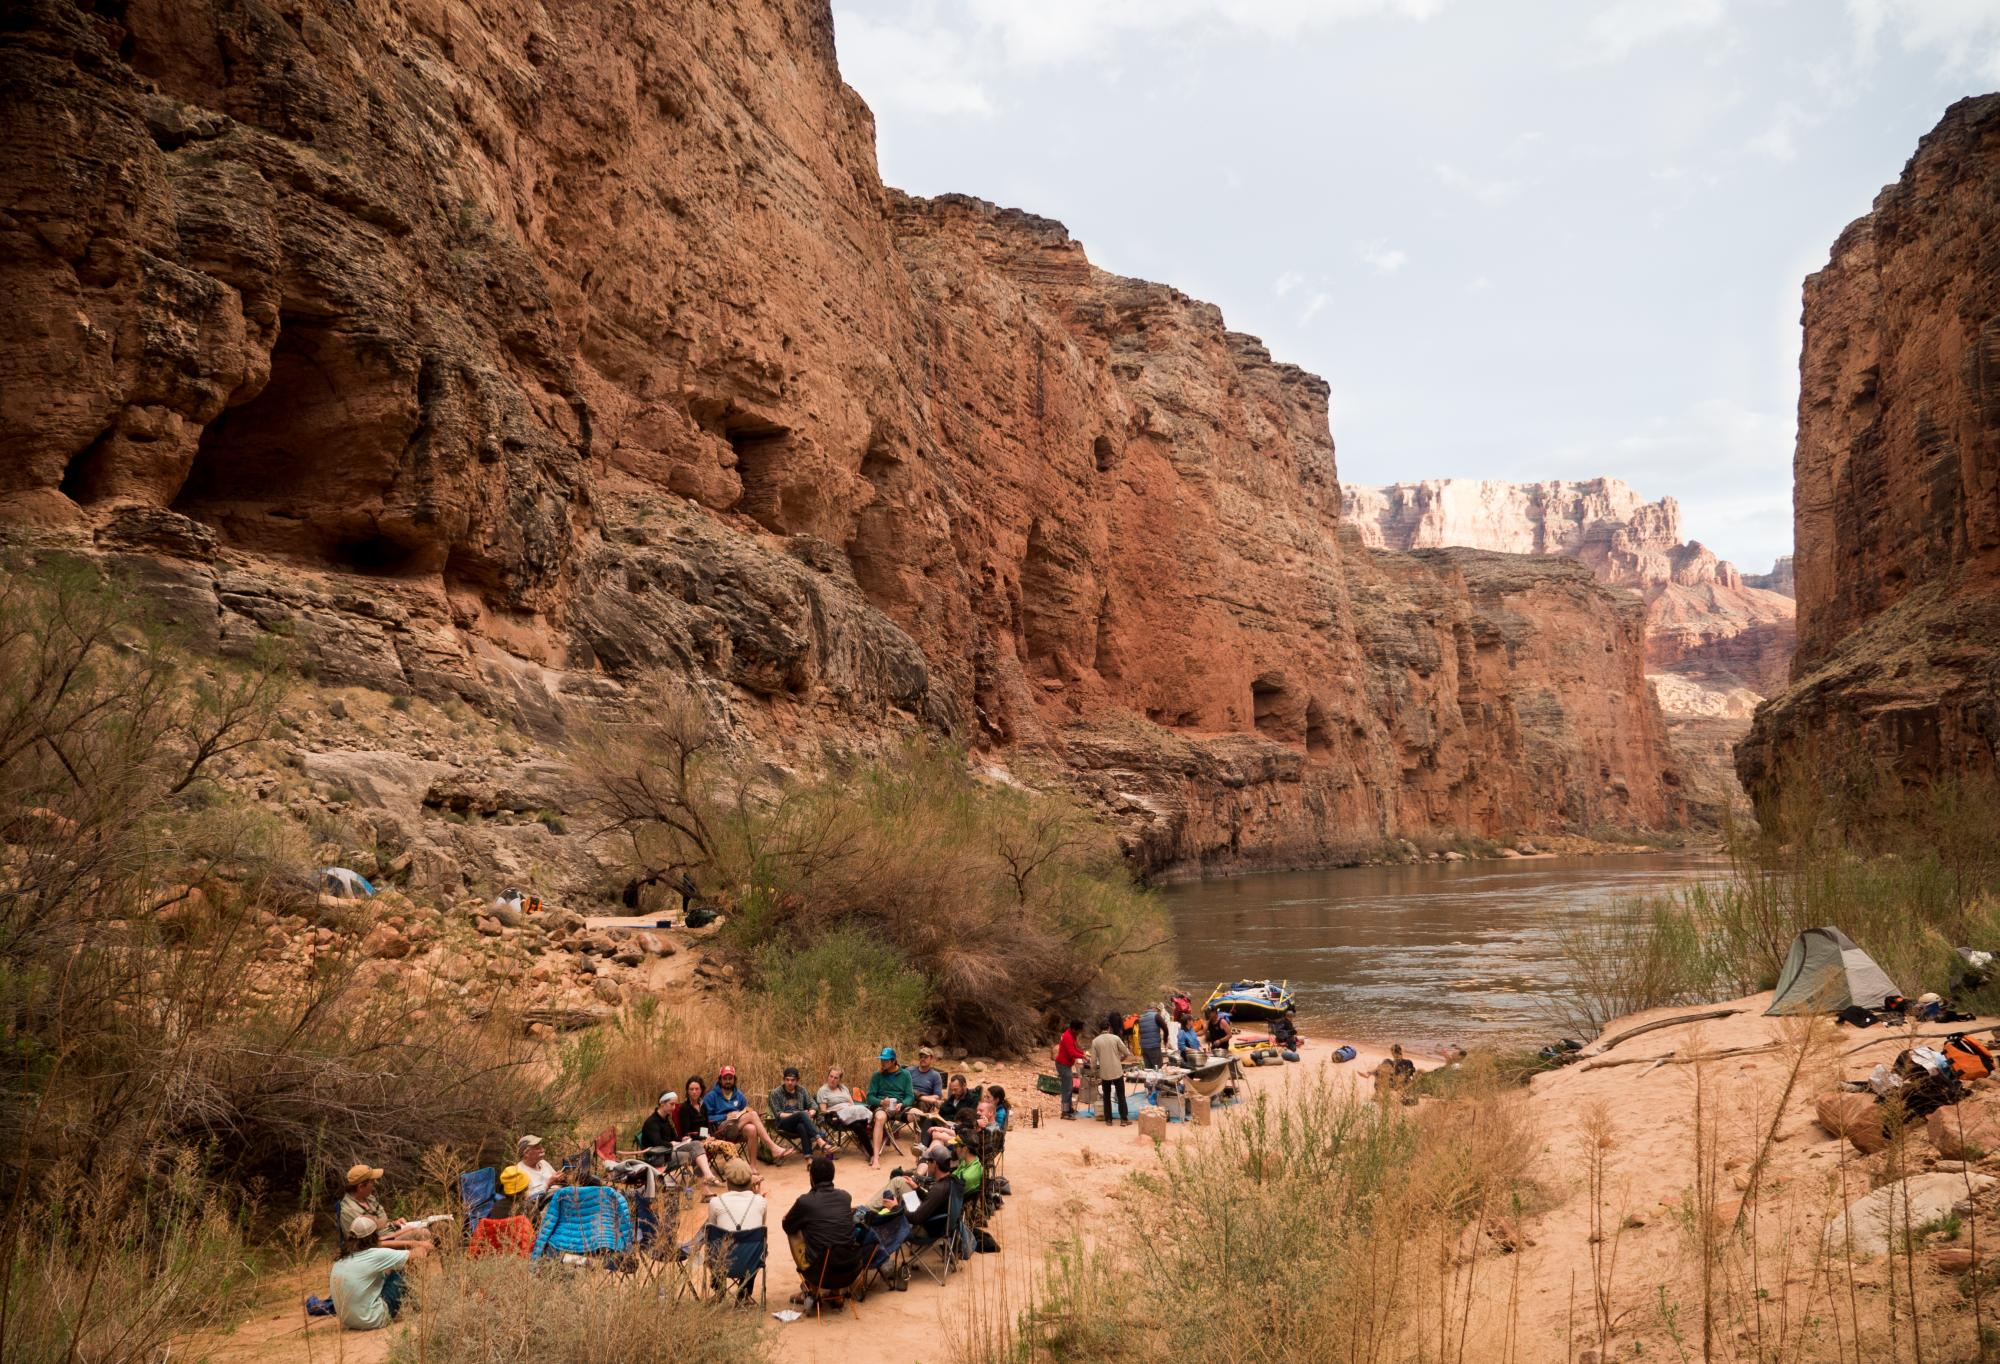 Men and women sit in circle on beach by Colorado River in Grand Canyon